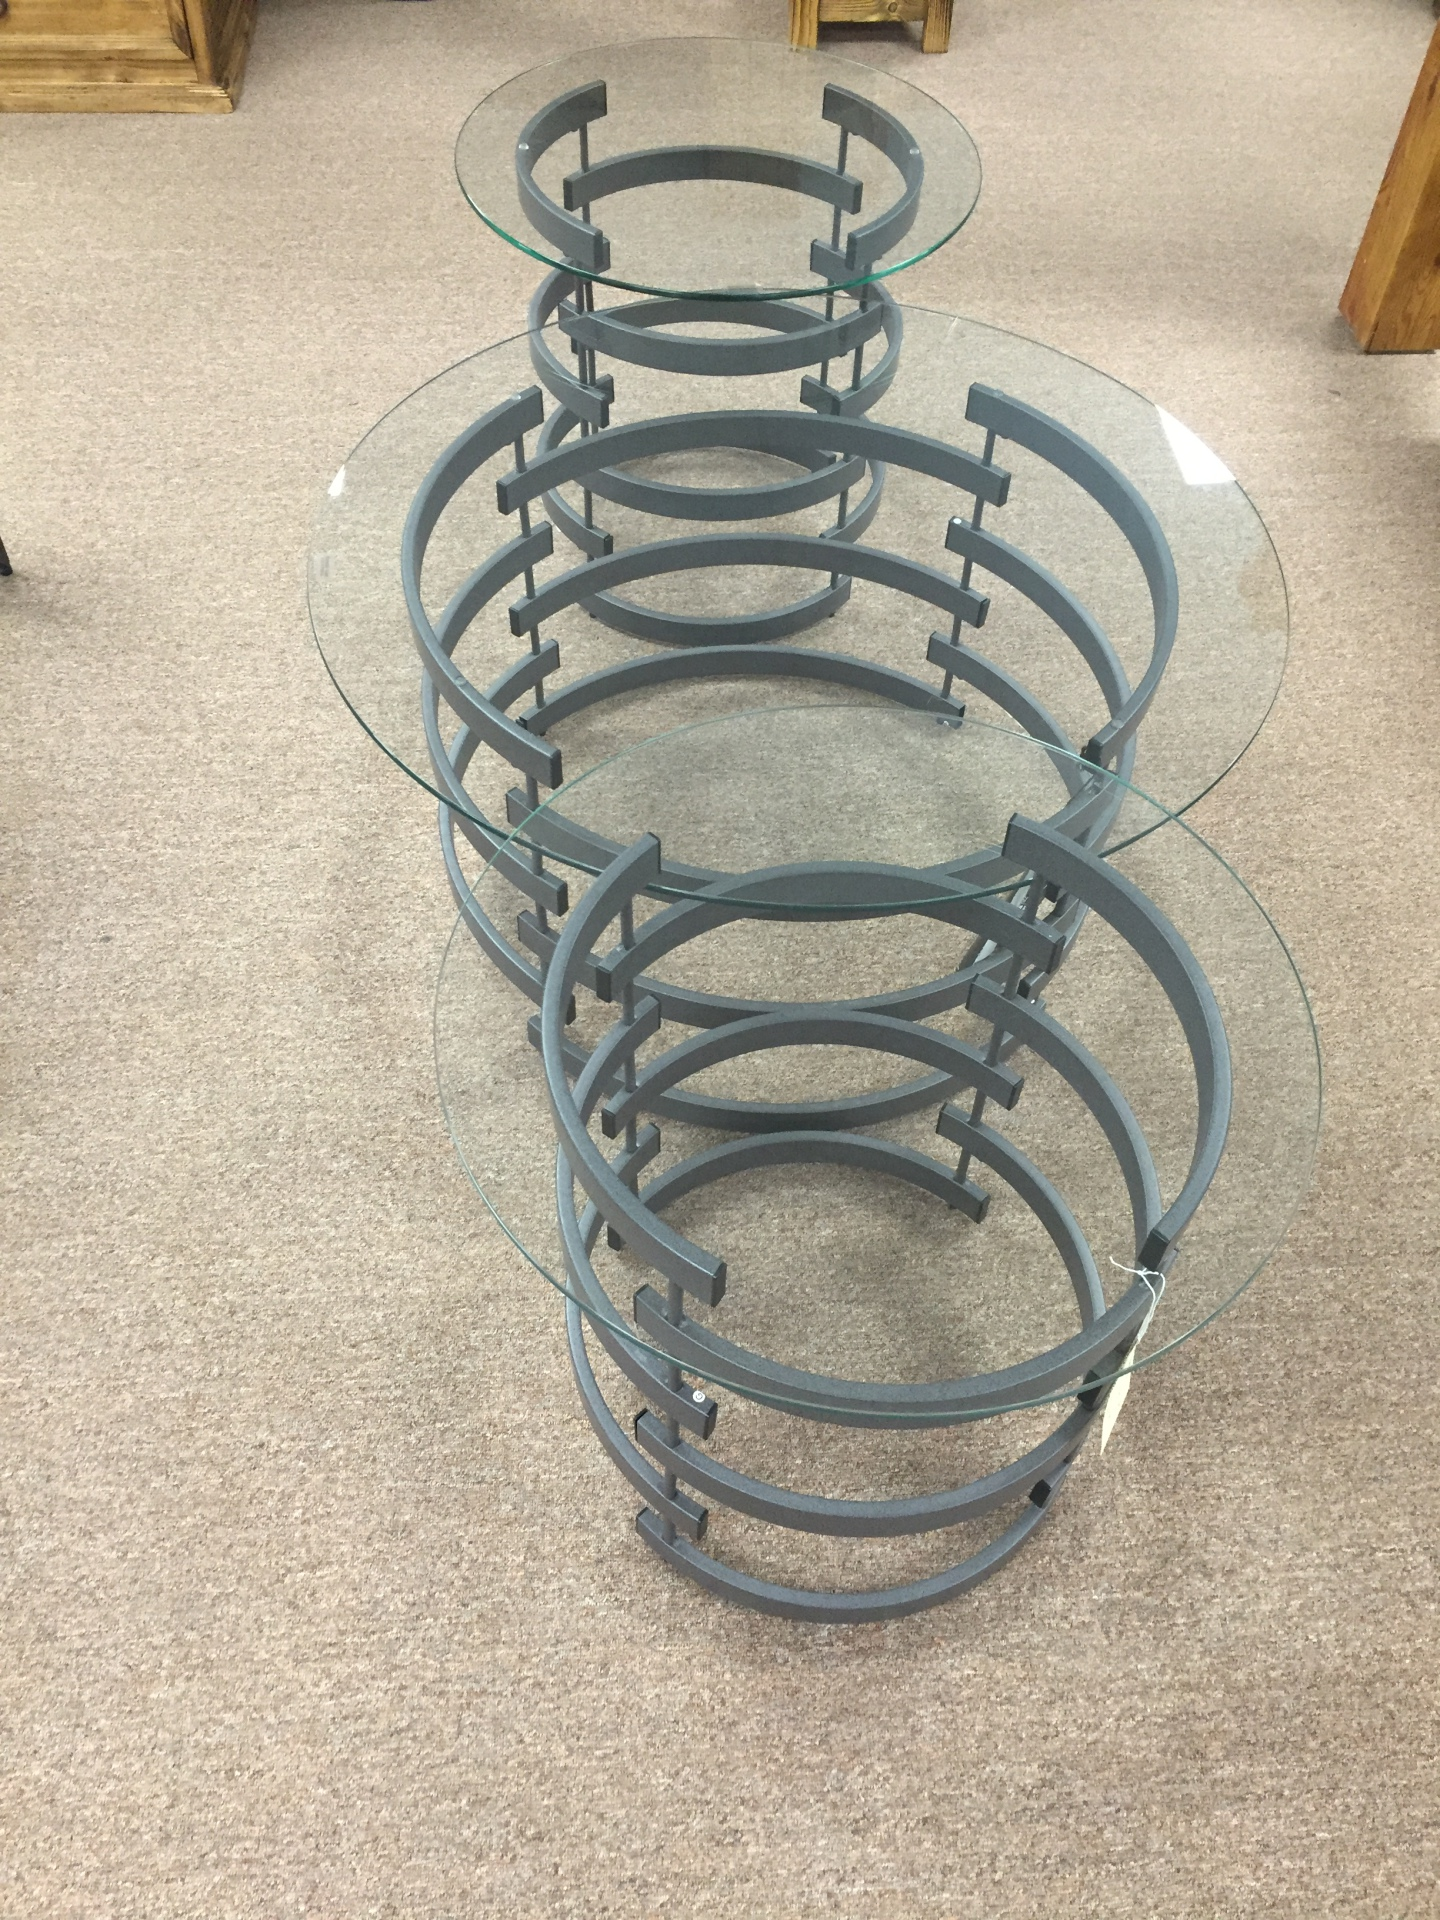 Ashley offee table/end tables